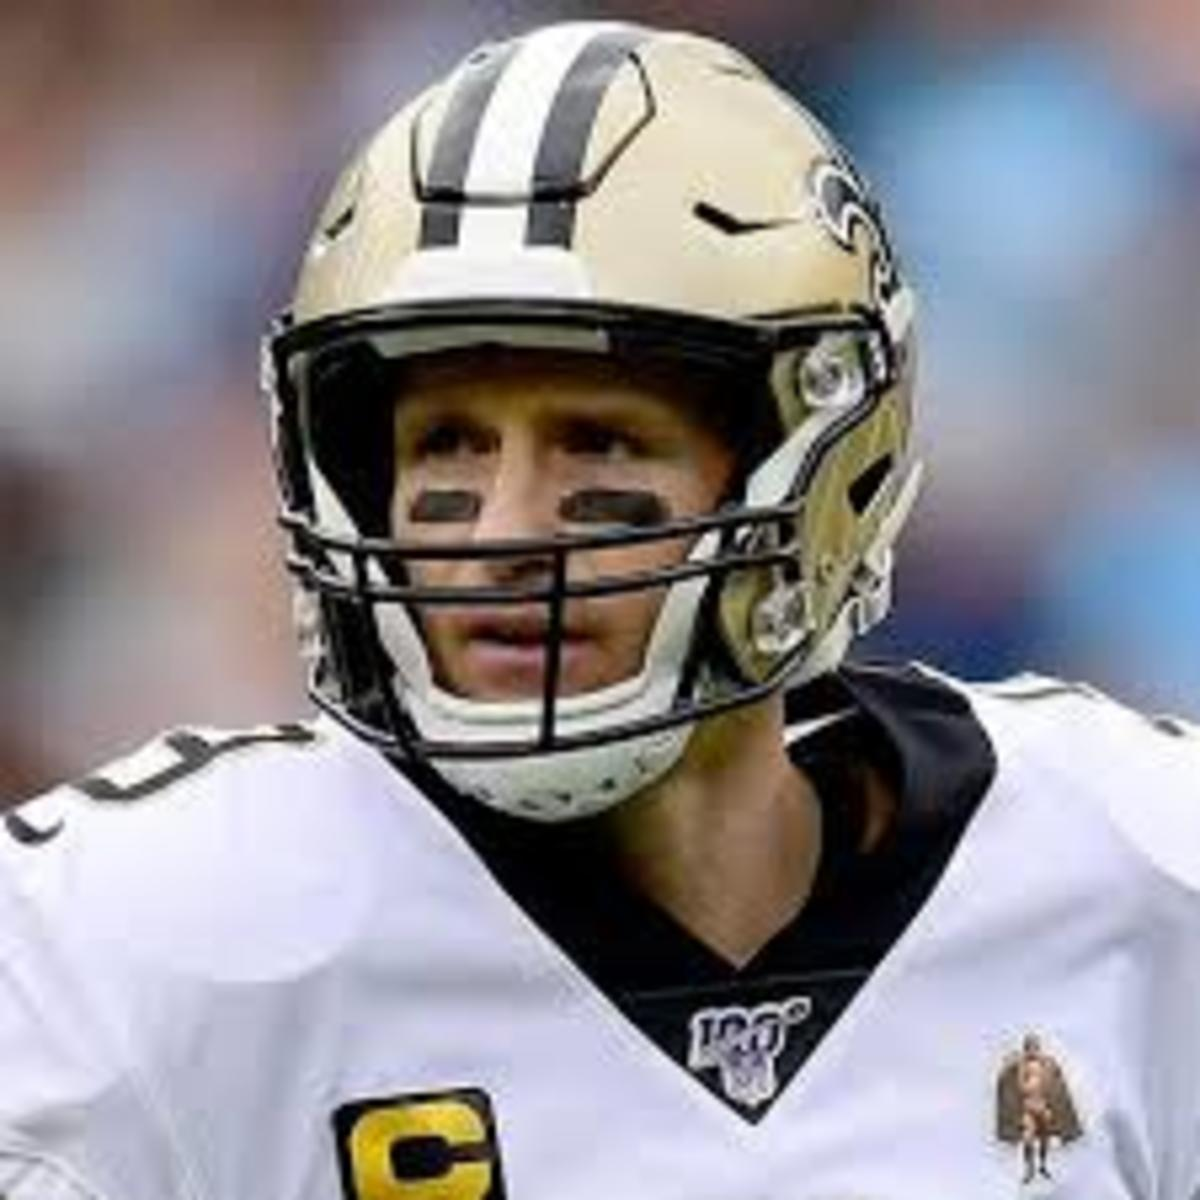 Drew Brees has been the captain and QB of the Saints for what seems like forever. All good things must come to an end.